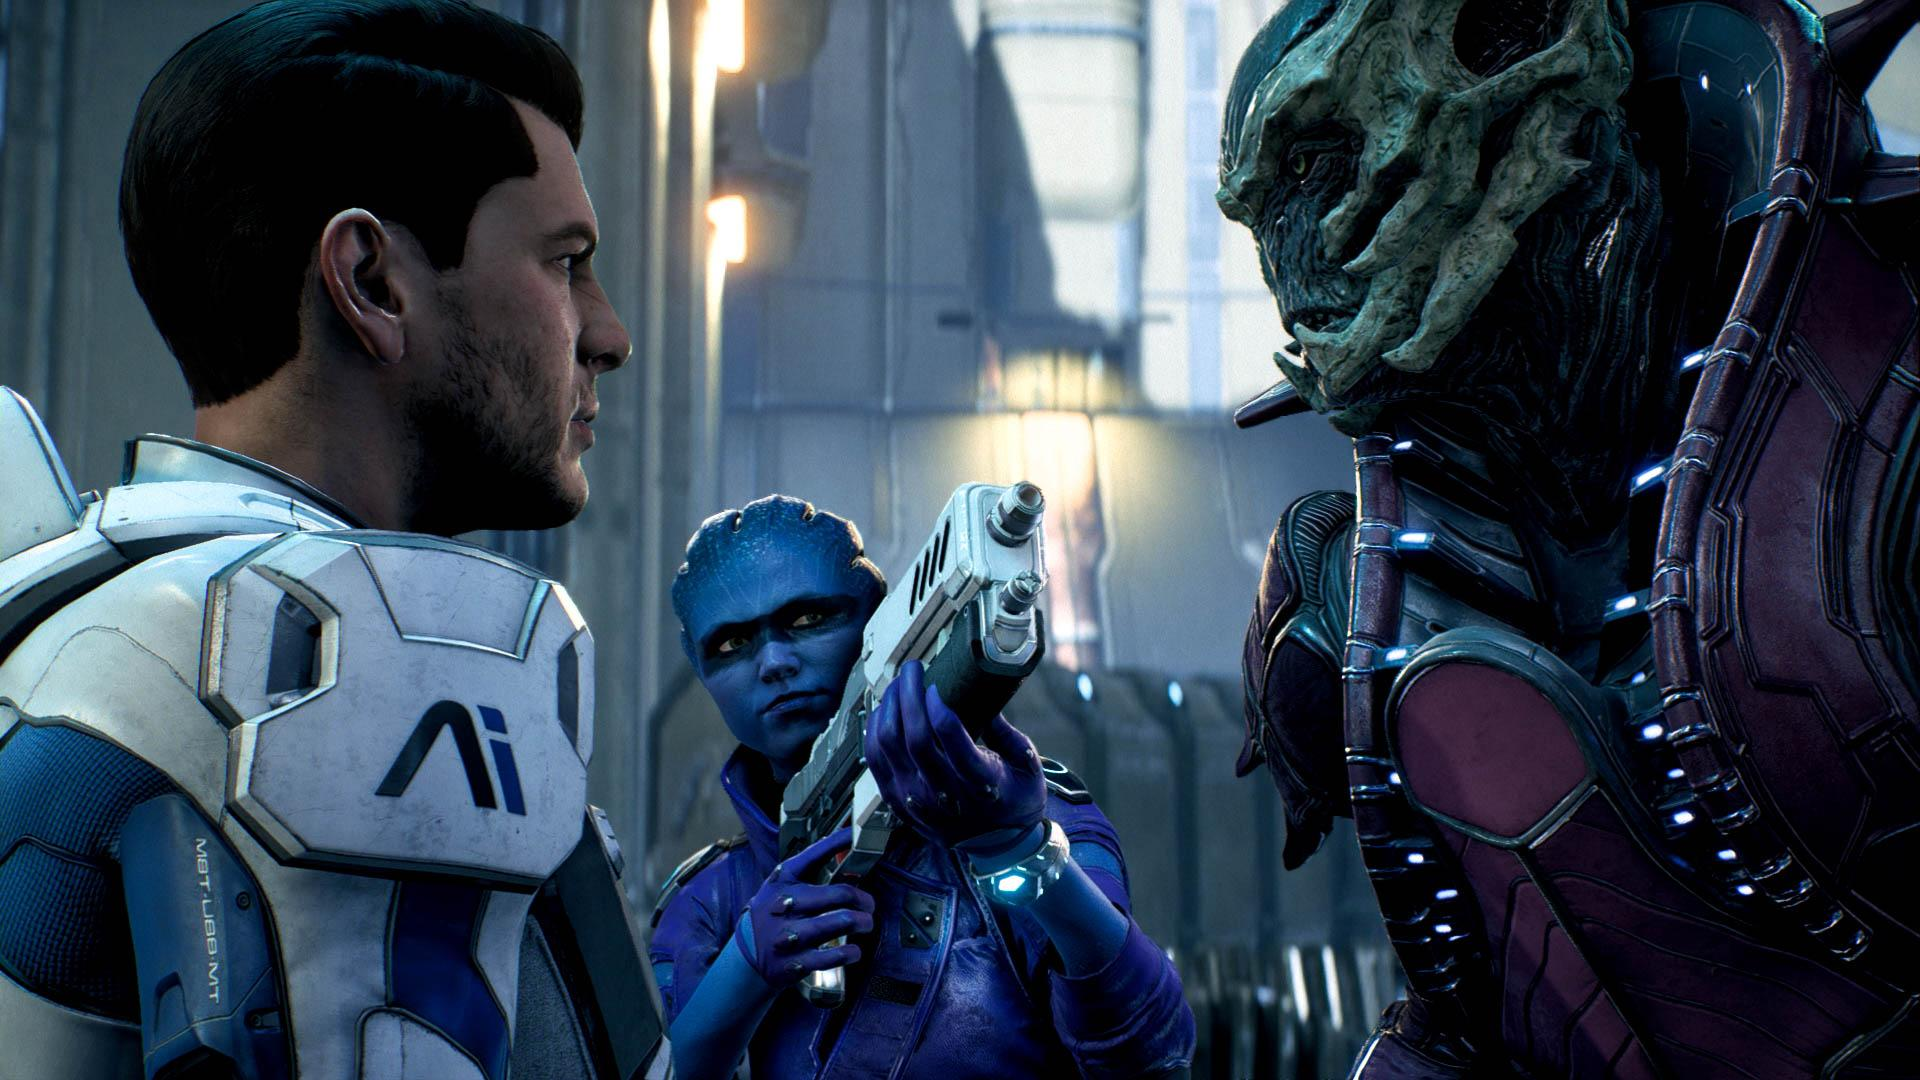 Mass Effect 5 trailer and release date